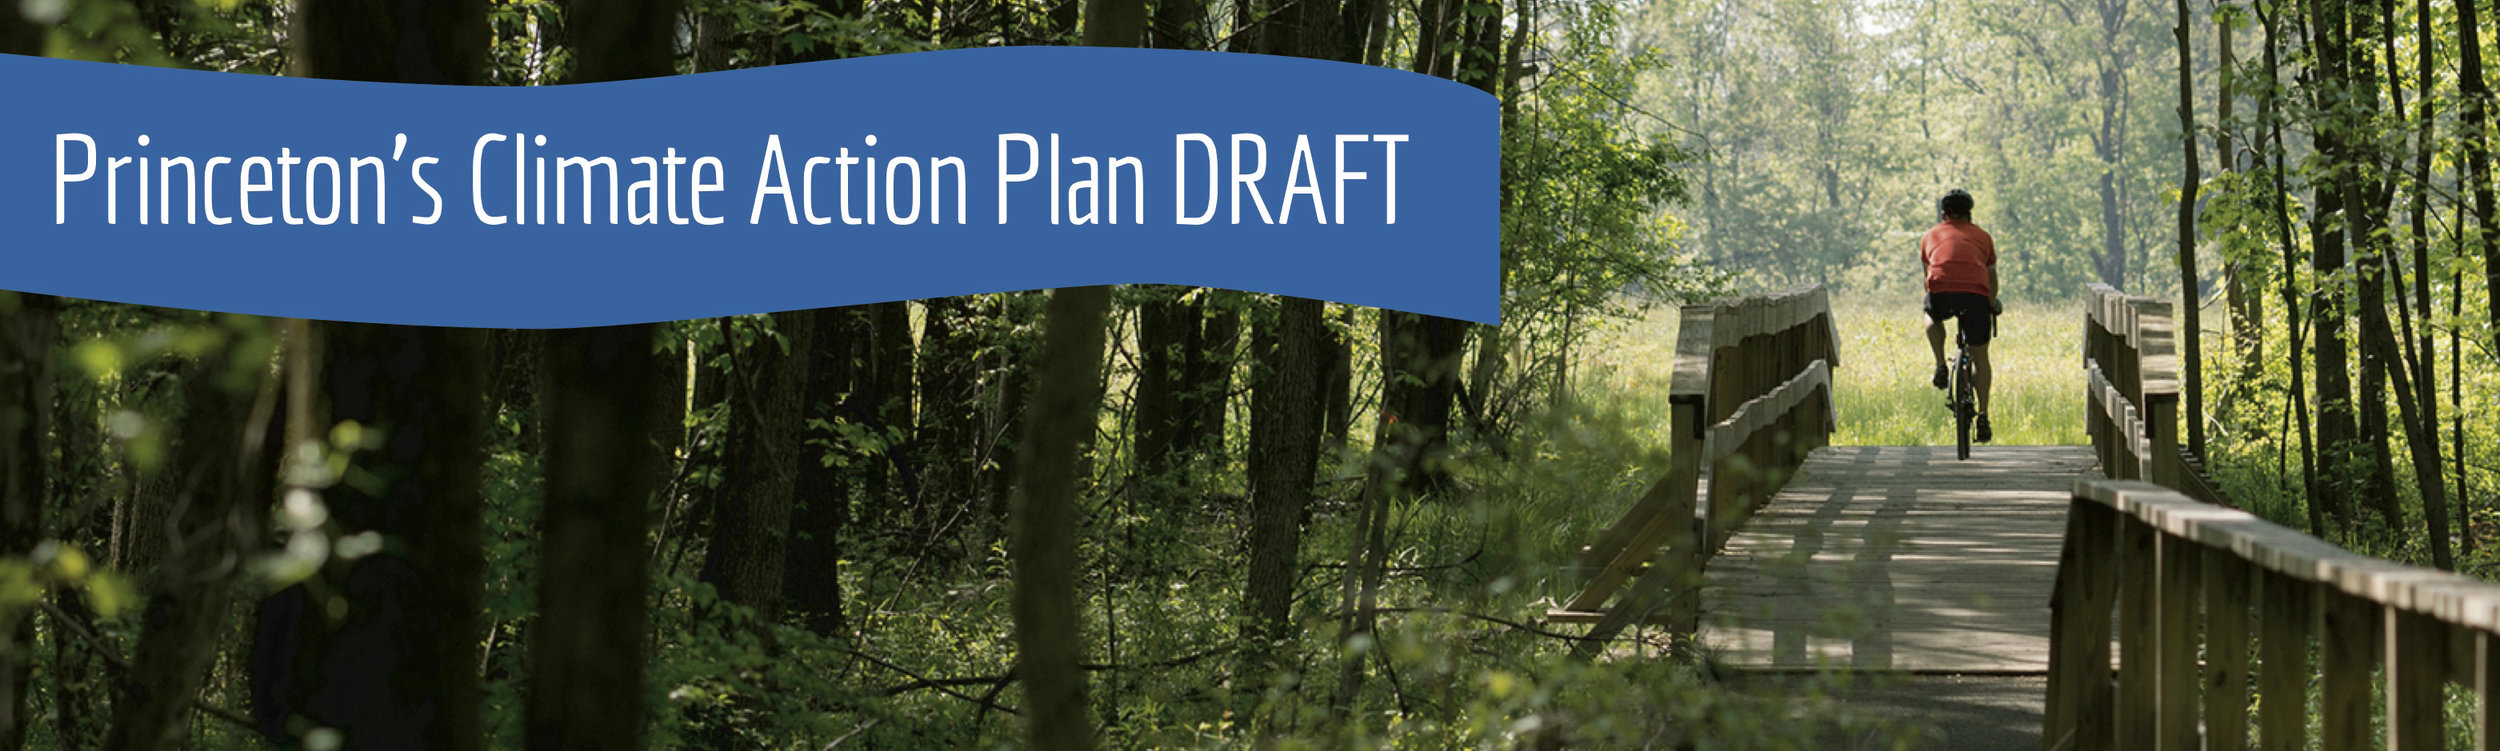 Princeton's Climate Action Plan DRAFT